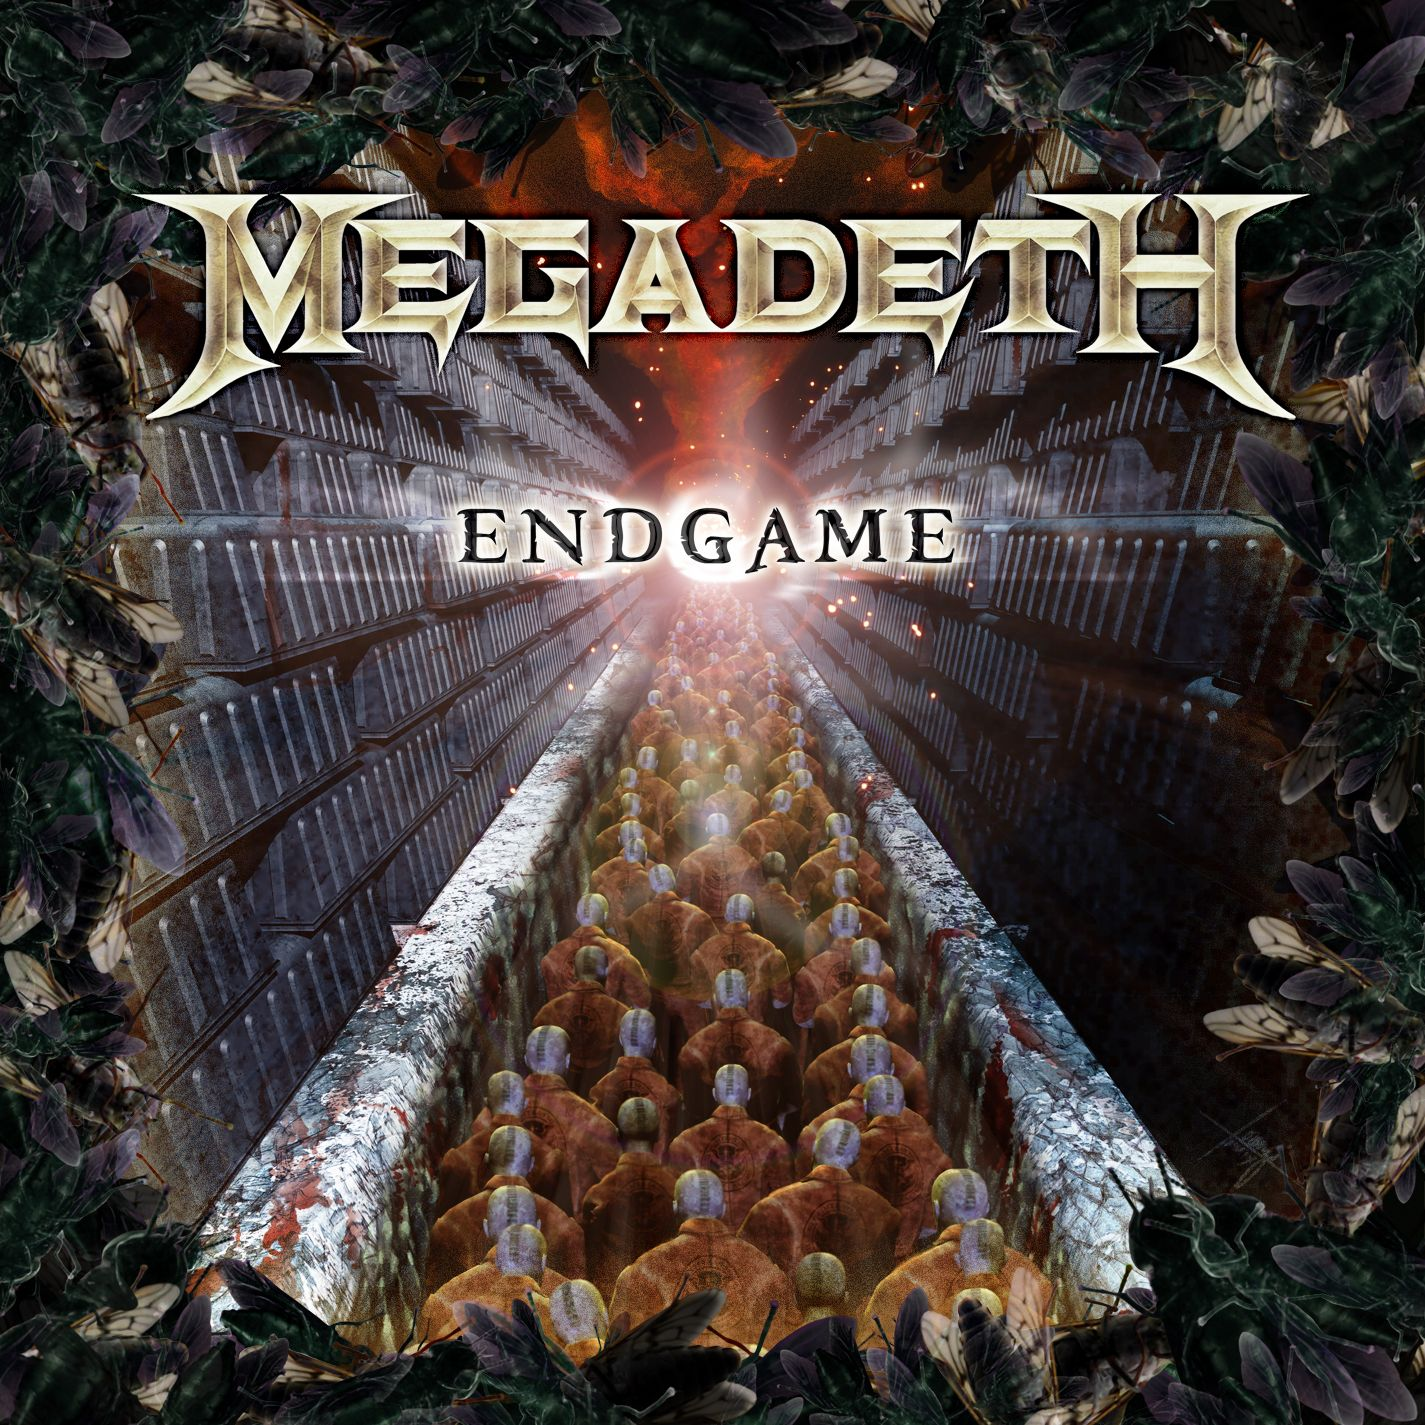 Megadeth: Endgame (2009) Book Cover